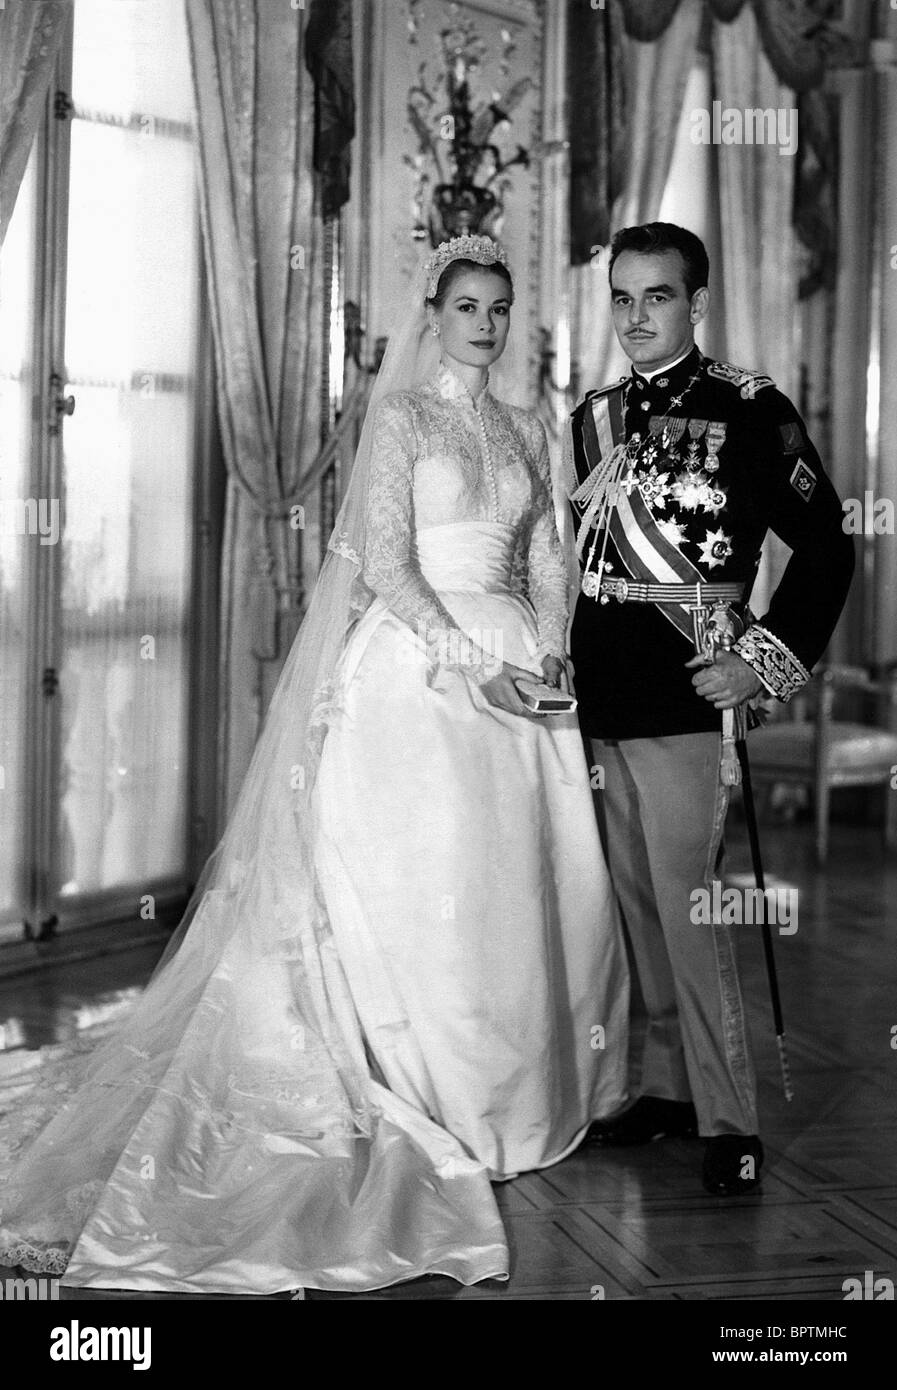 GRACE KELLY & PRINCE RAINIER III PRINCE & PRINCESS OF MONACO (1956) - Stock Image